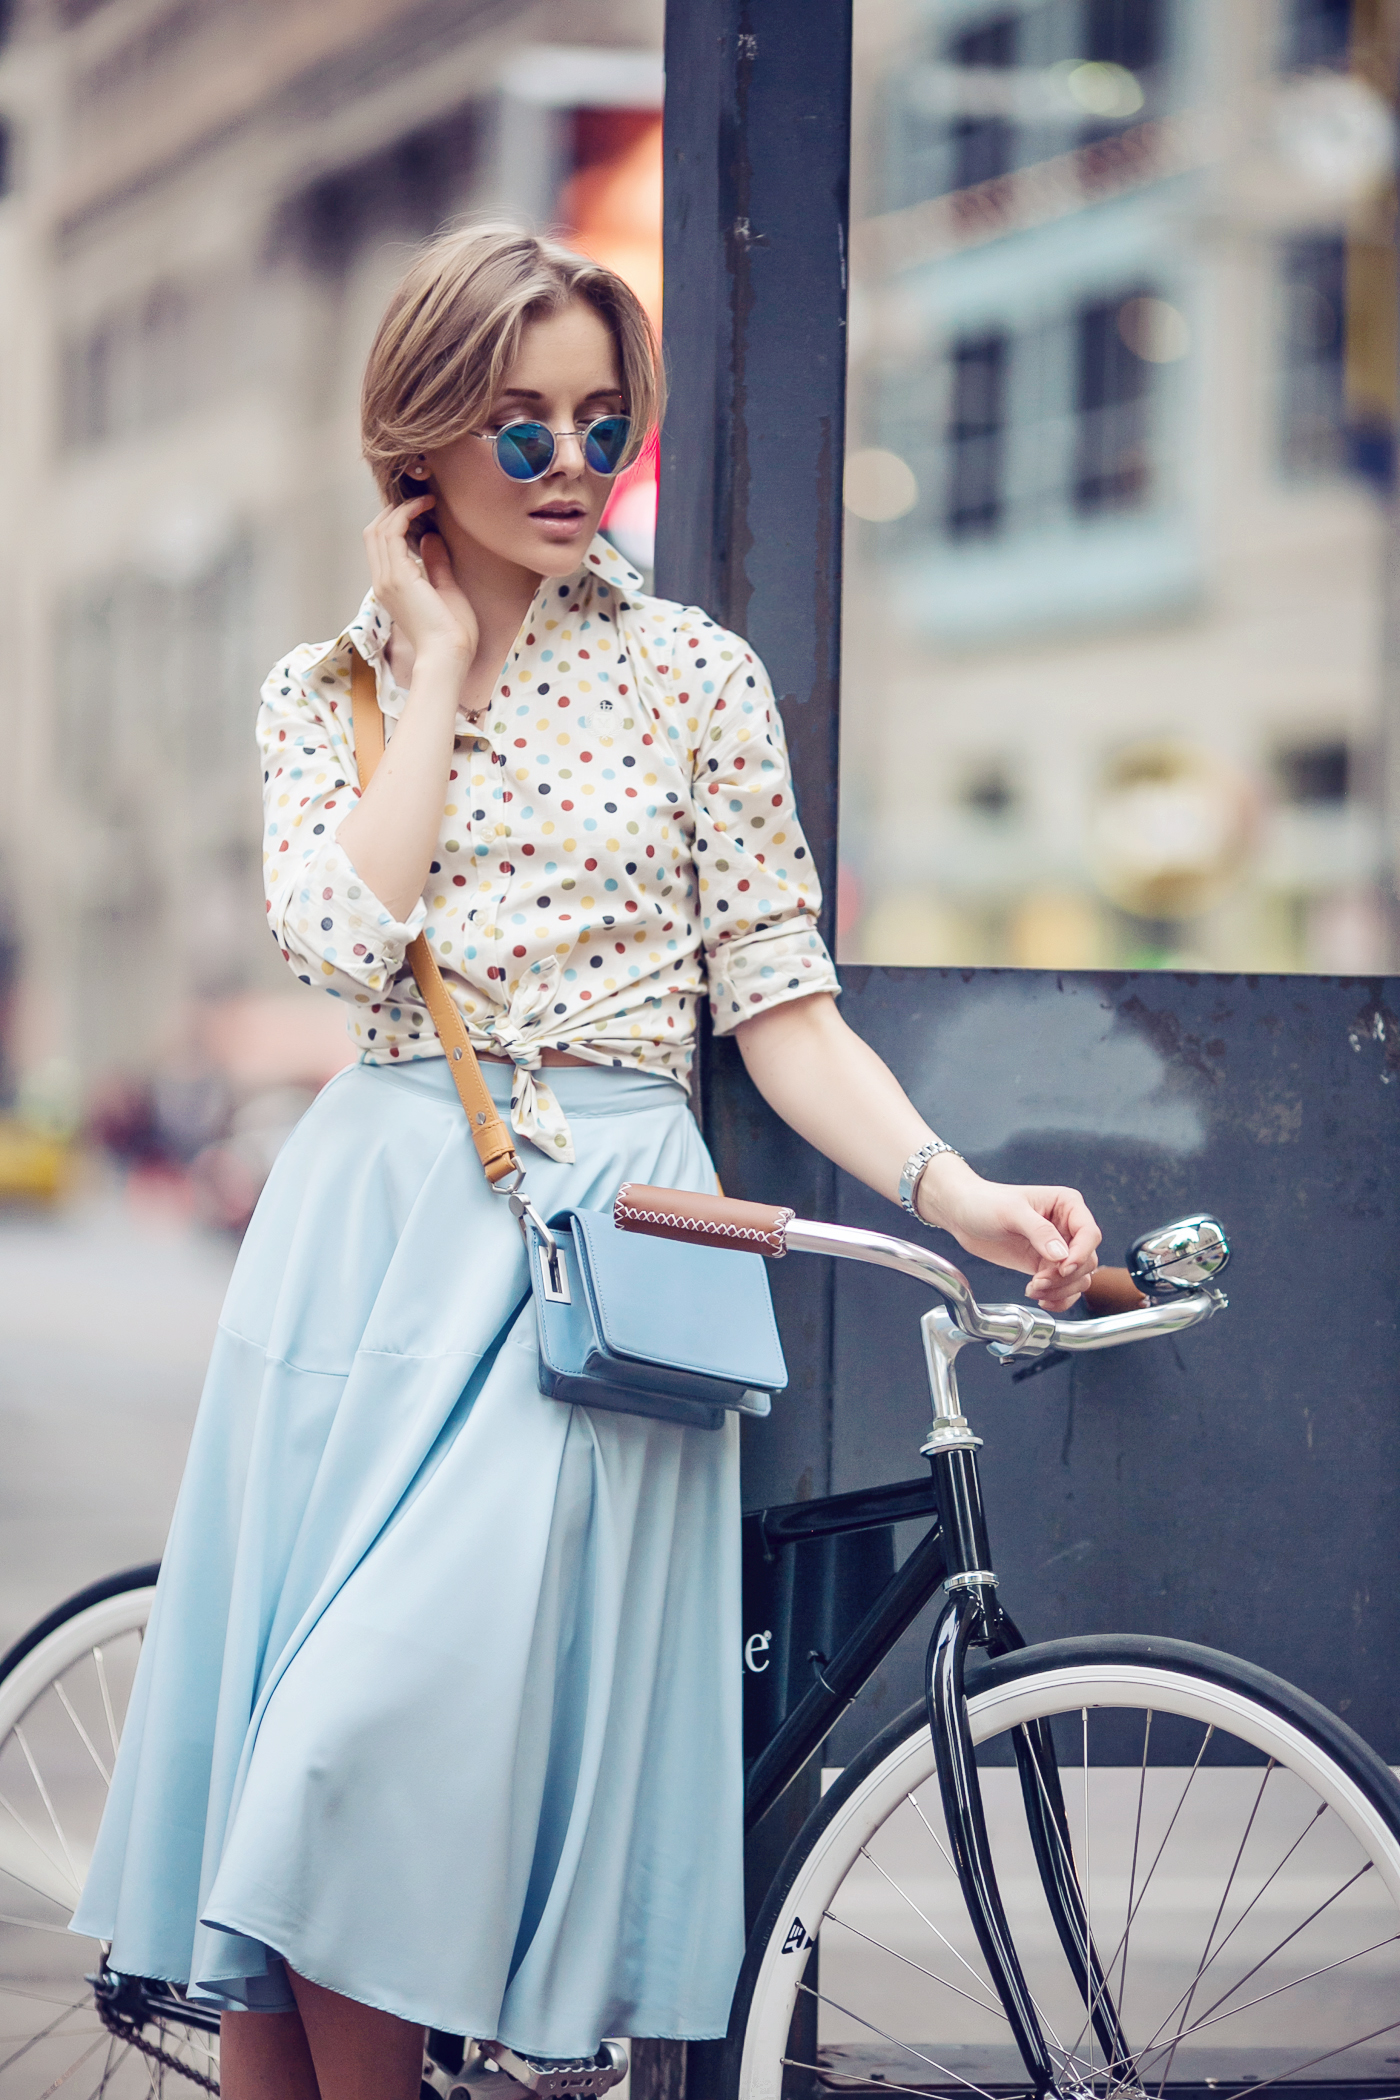 darya kamalova a fashion blogger from thecablook in dallas texas on the bycicle in polka dot shirt and blue skirt with gold espadrilles and other storie bag for rewardstyle rsthecon-13